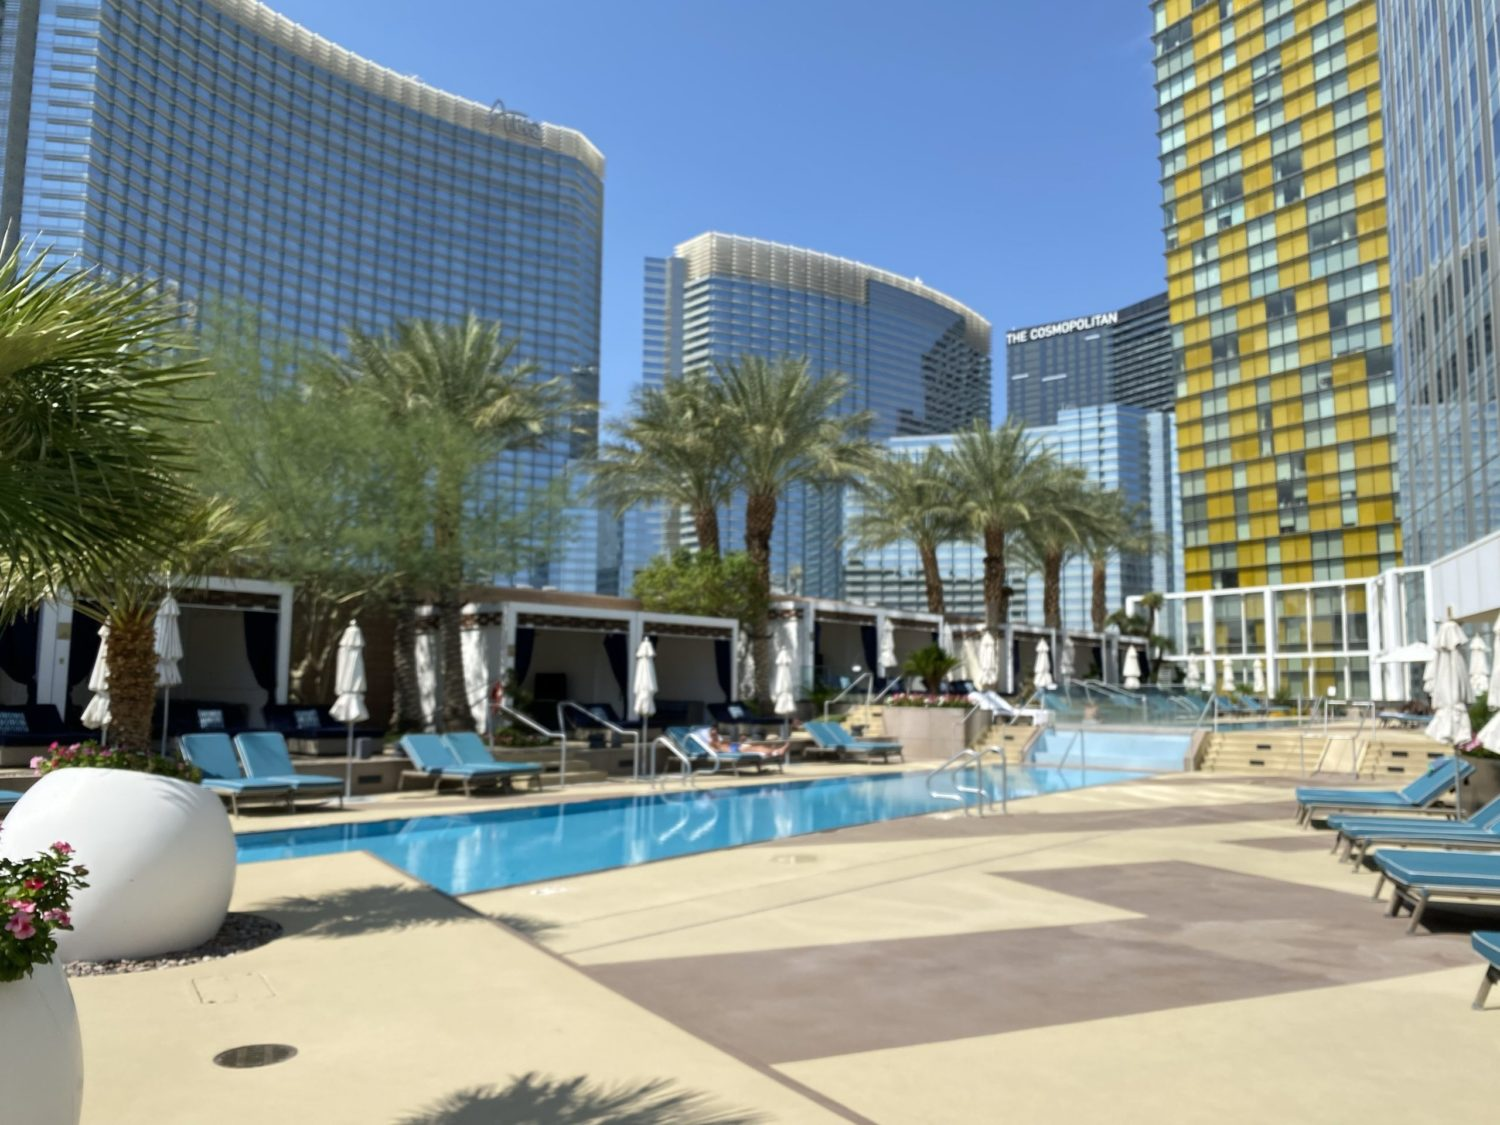 waldorf astoria las vegas pool